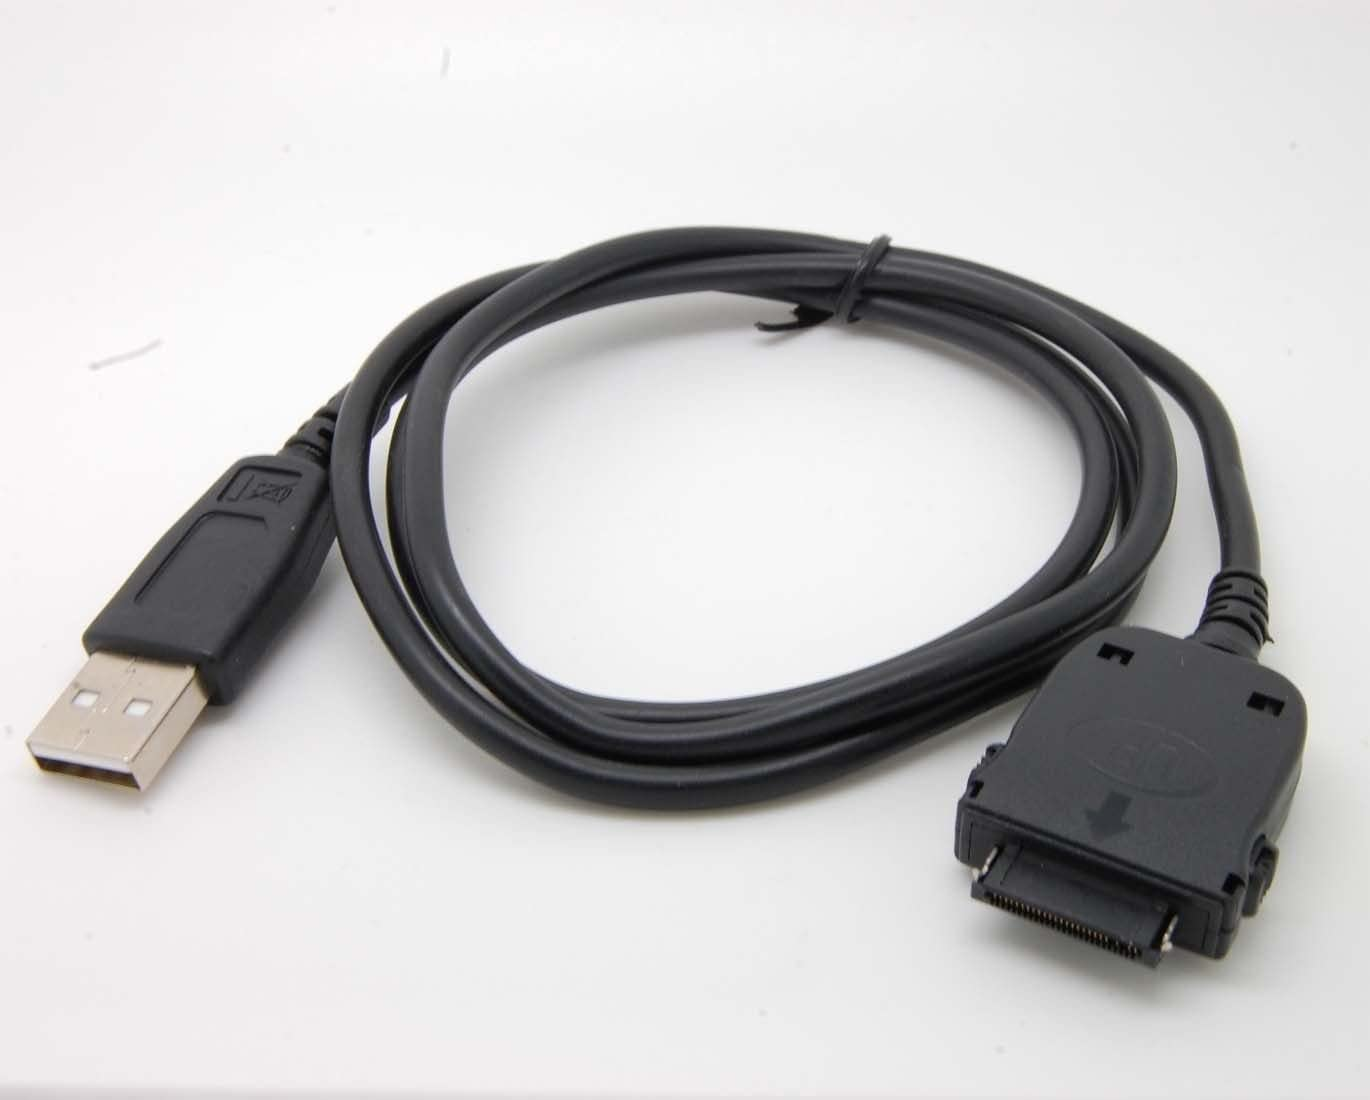 USB Sync Data Charger Cable for Hp IPAQ Rz1700/1710/1715/1717/h1900/1910/h1915/1920/h1930/h1937/h1940/1945/rx1950/rx1955/hx2110